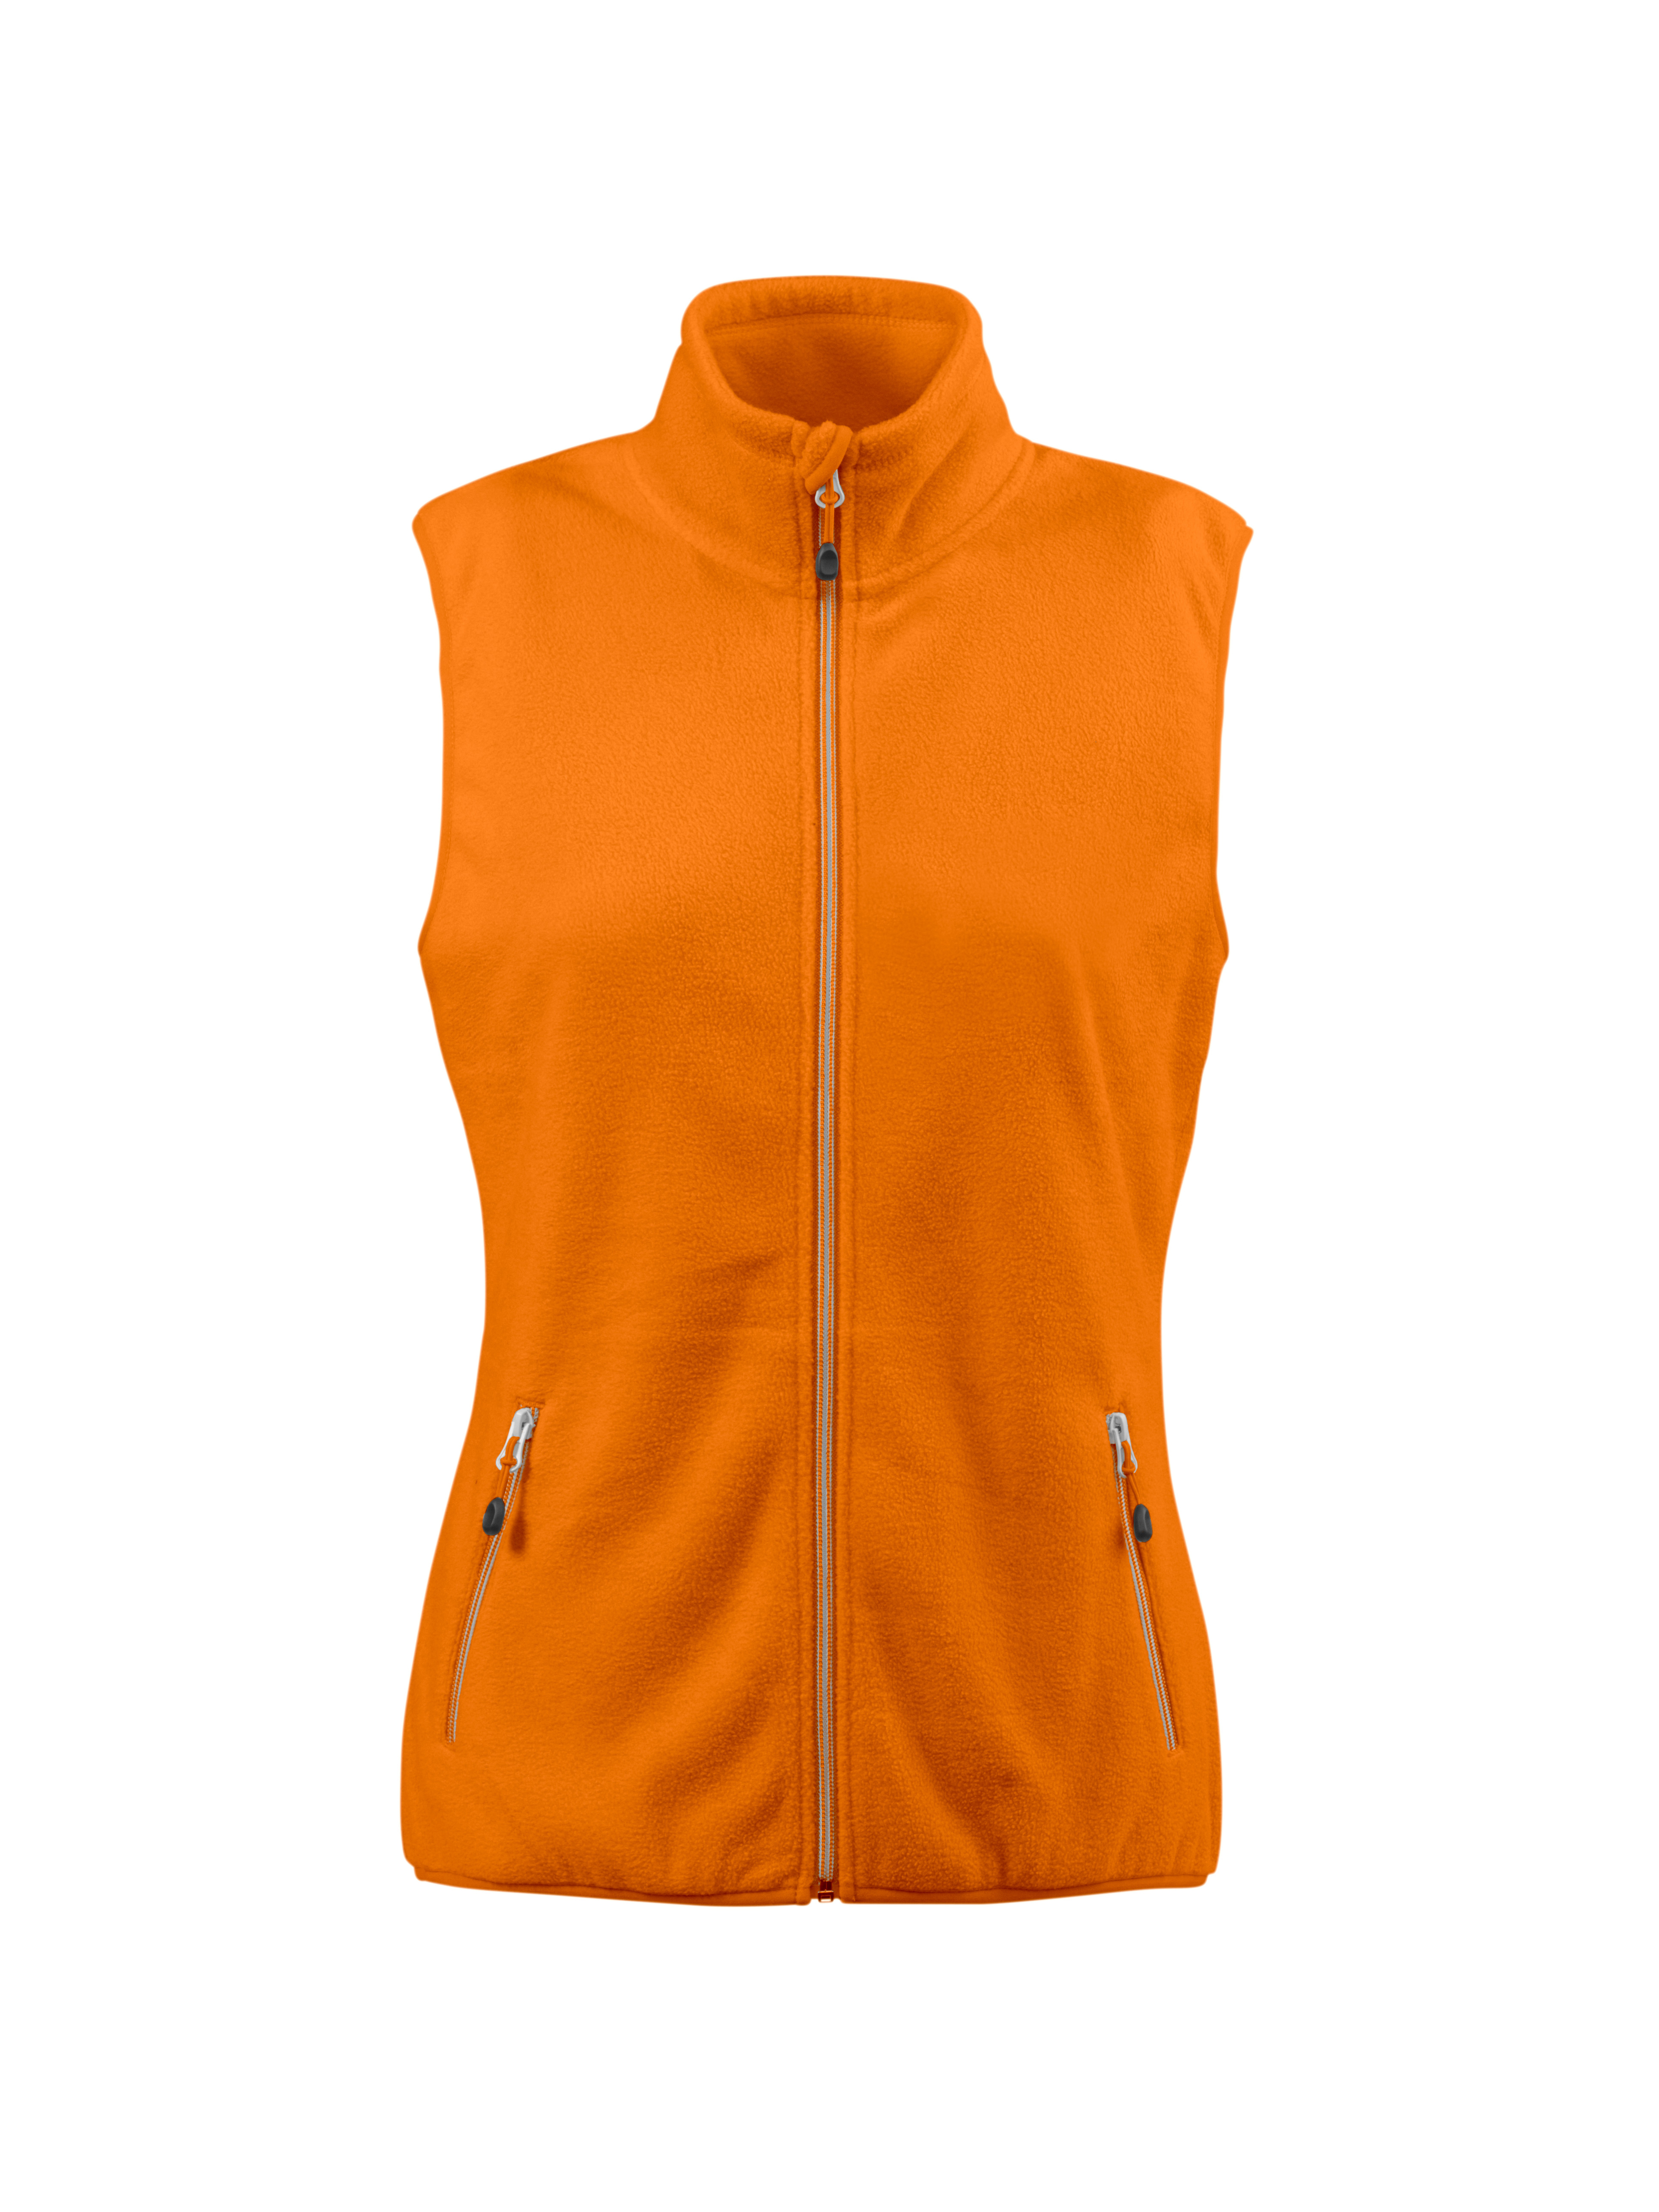 PRINTER SIDEFLIP LADY FLEECE VEST   - vrouwen